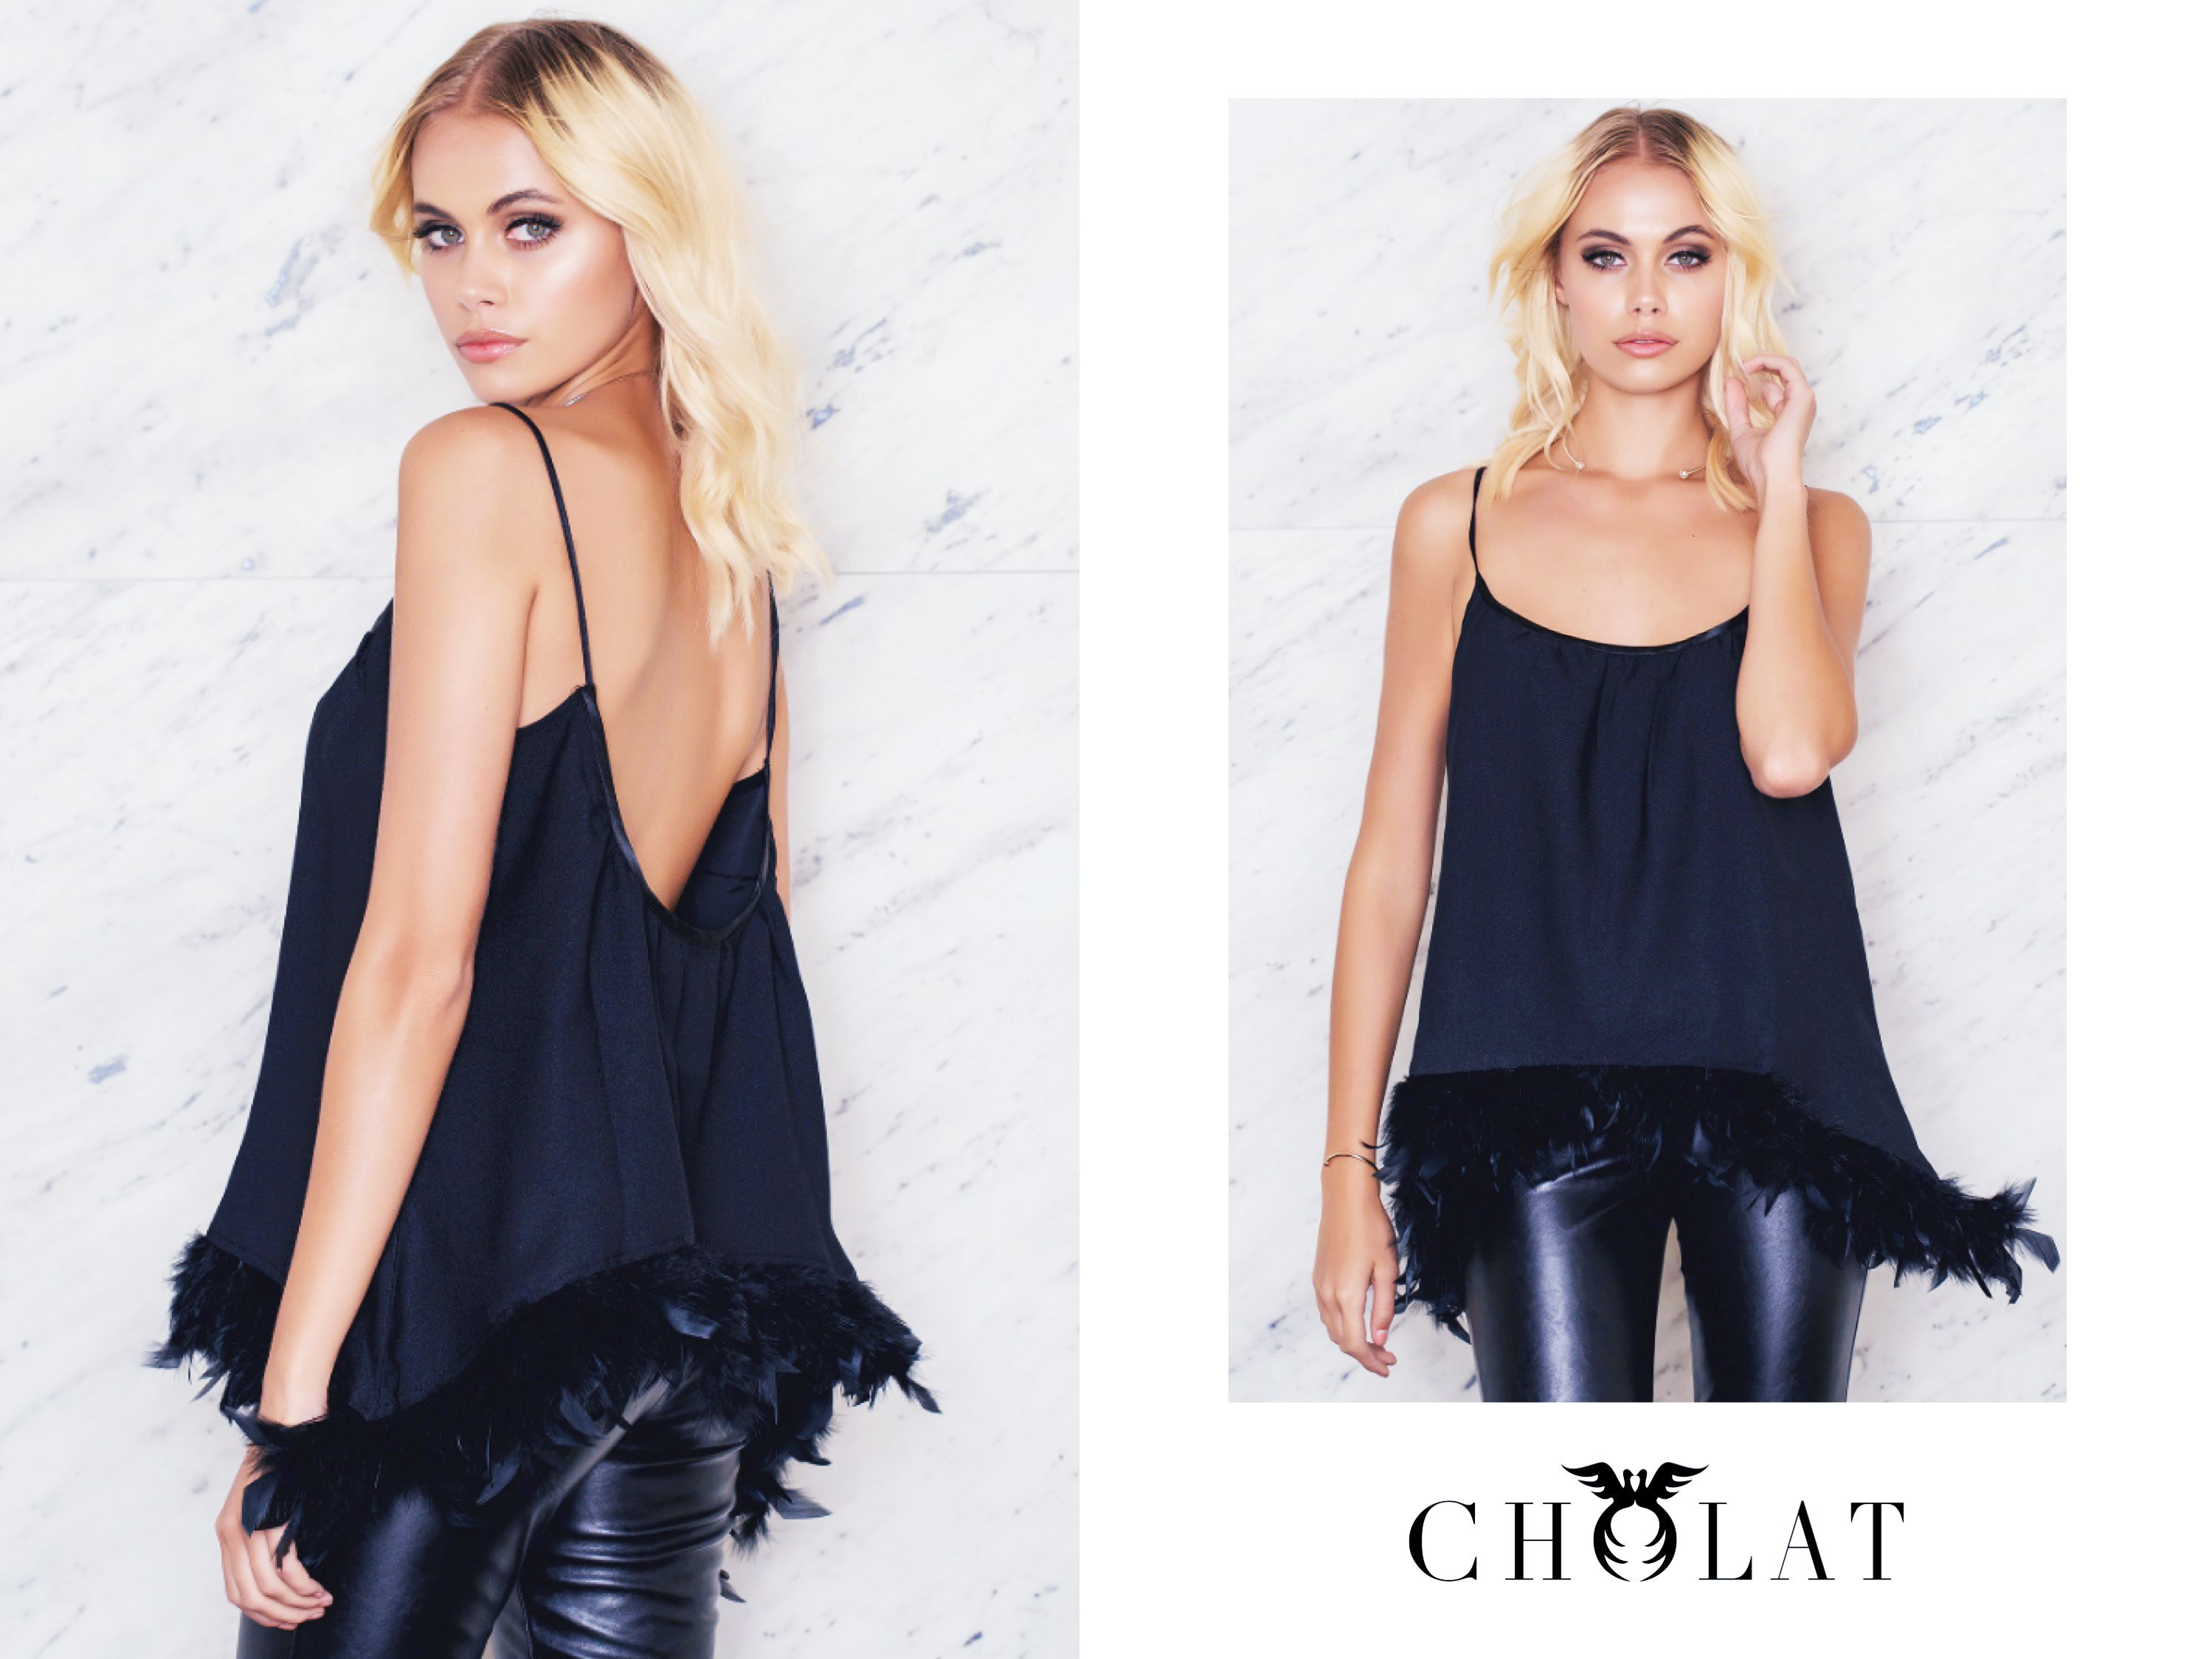 Dust Feather Top <3 https://cholatparis.com/products/rombo-top-feather-black